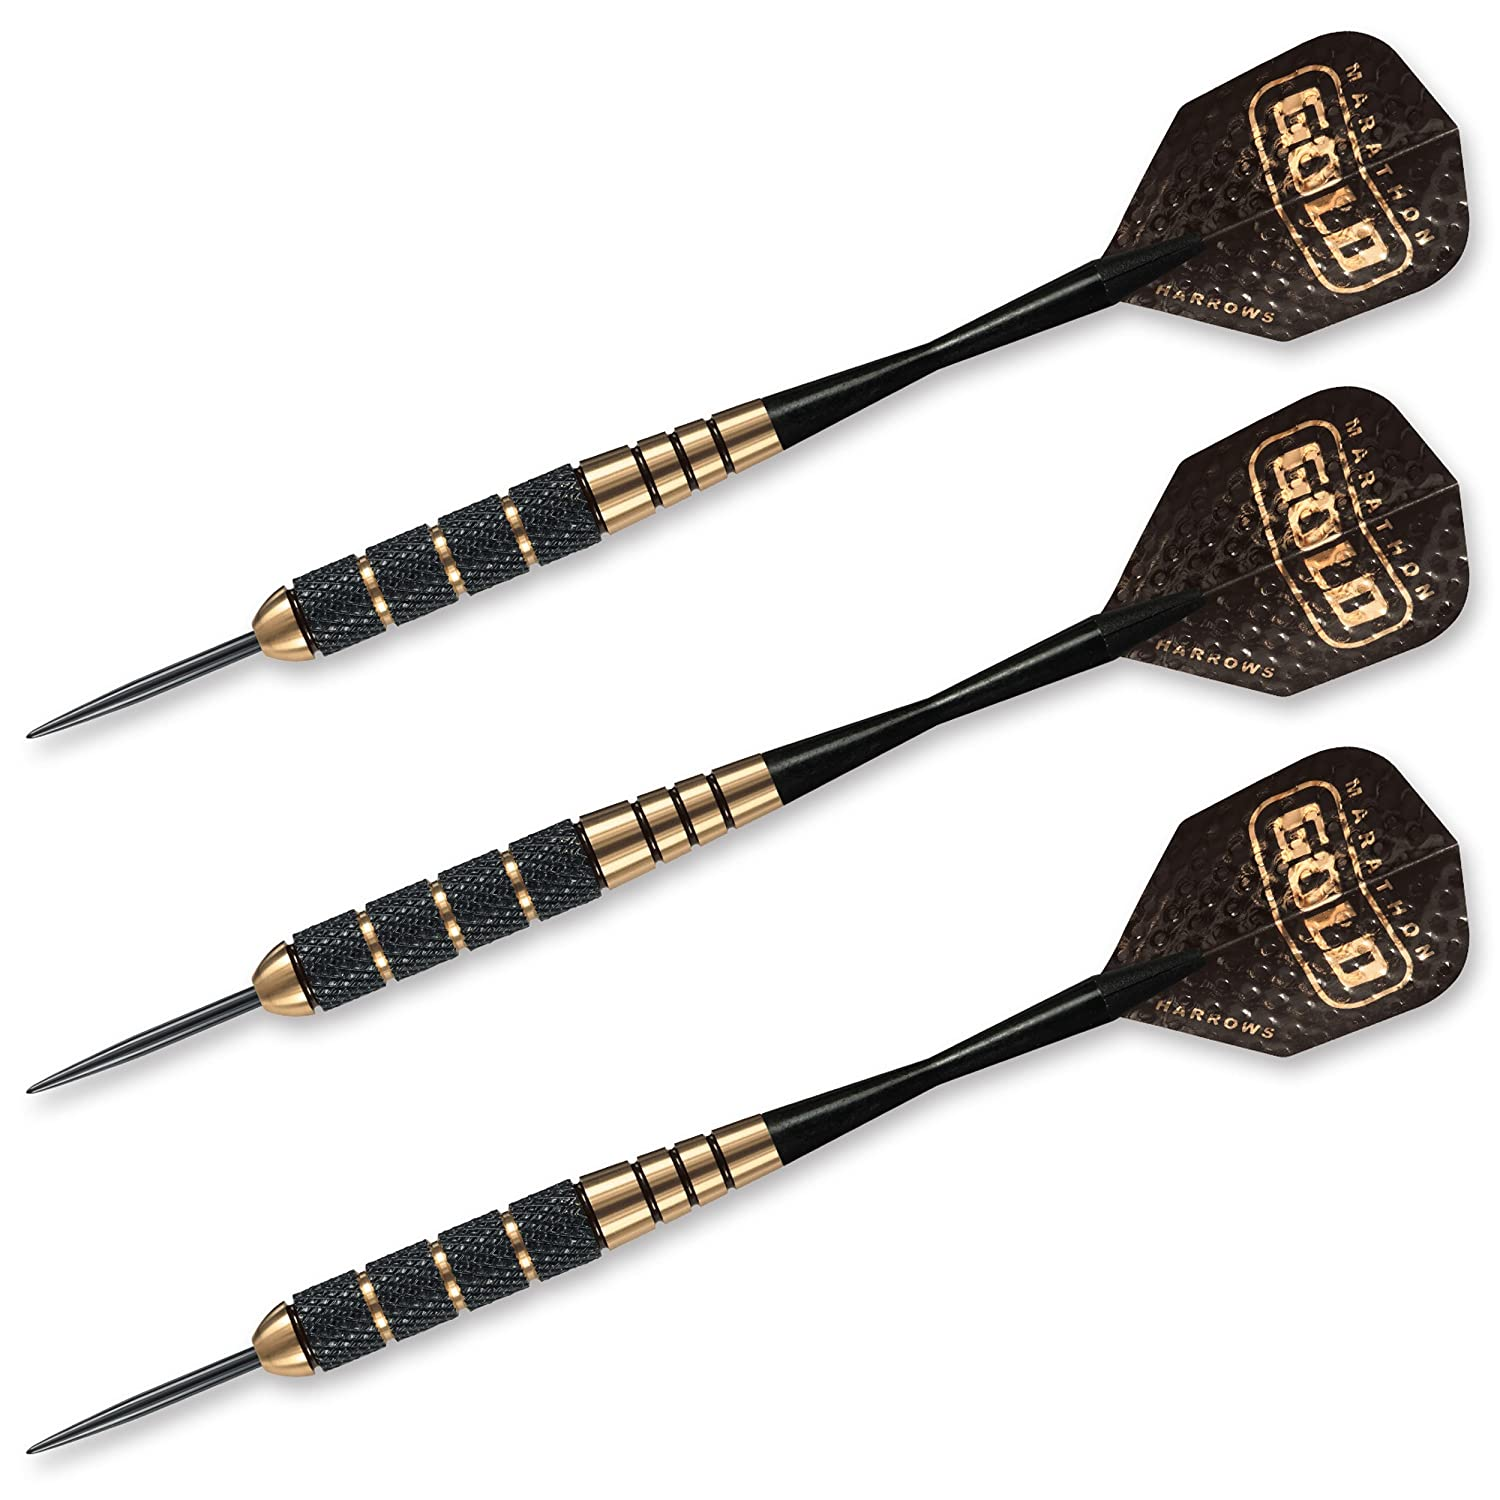 The Best Dartboard Darts 1